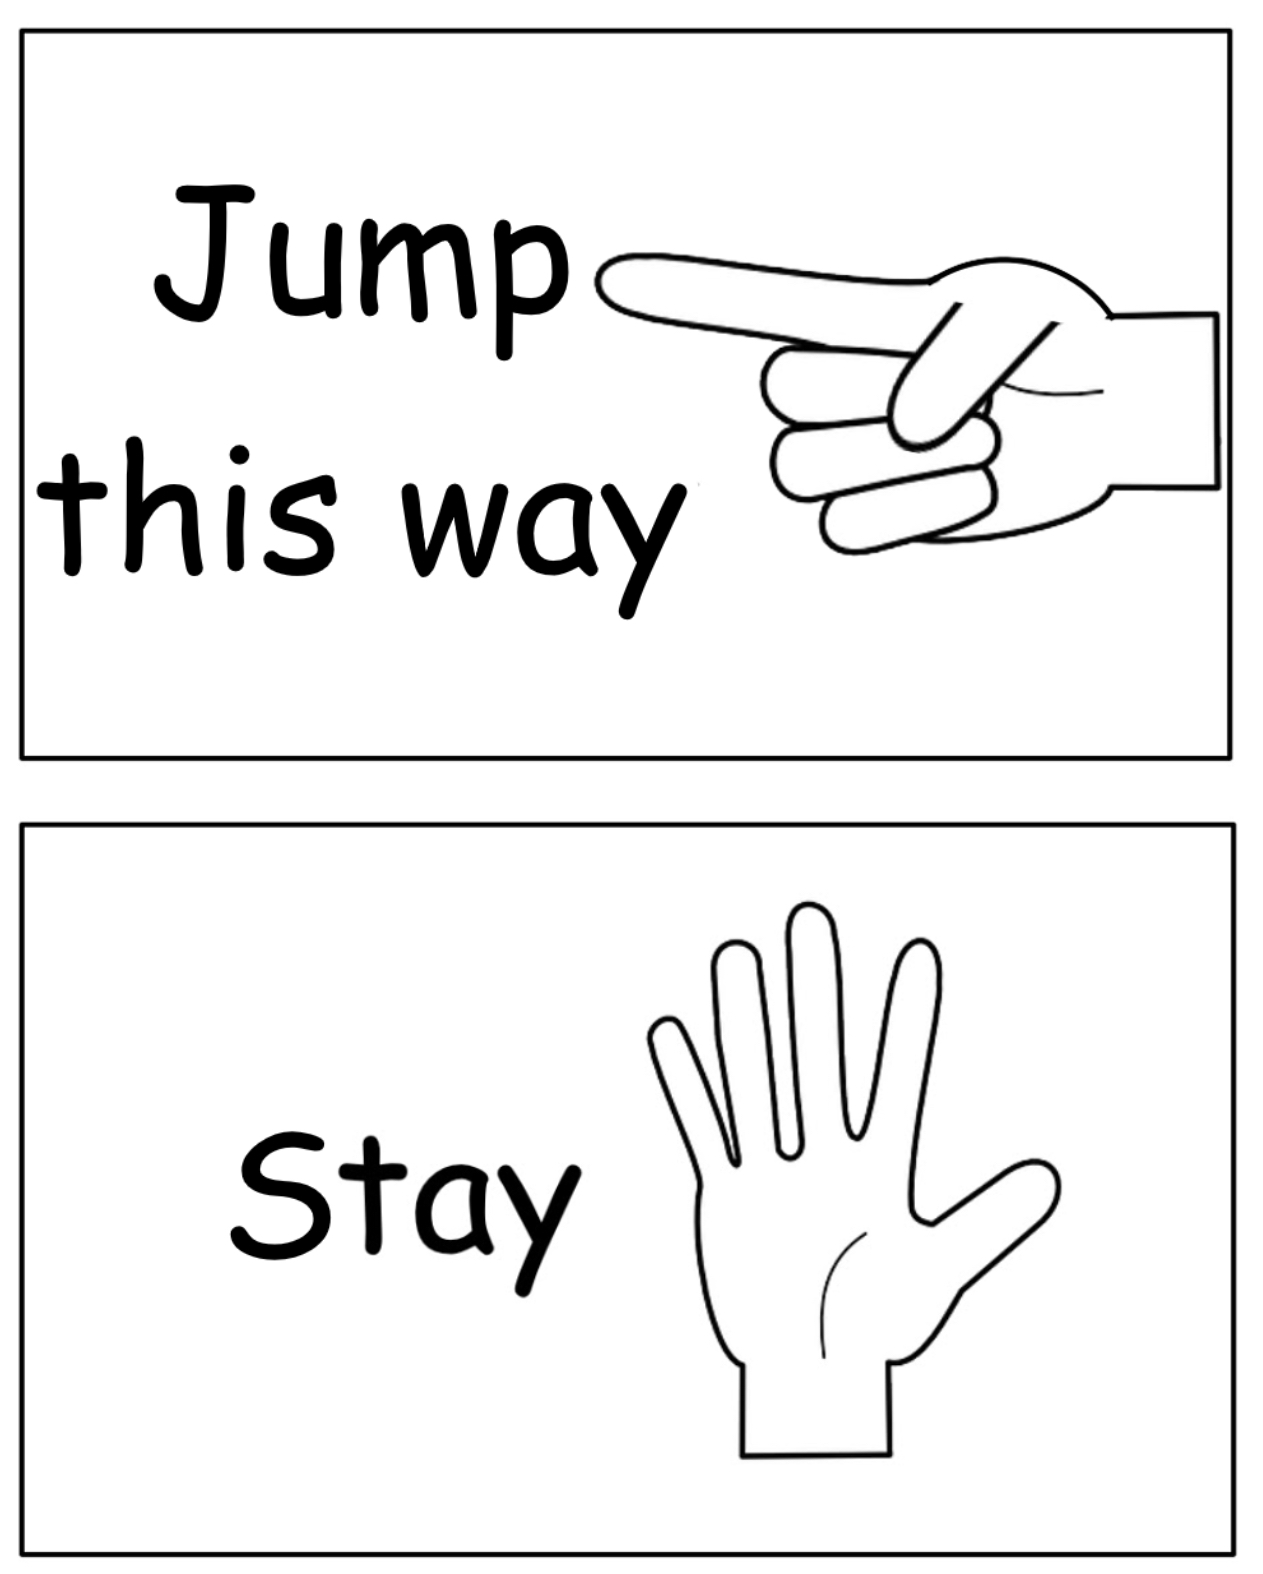 Command signs